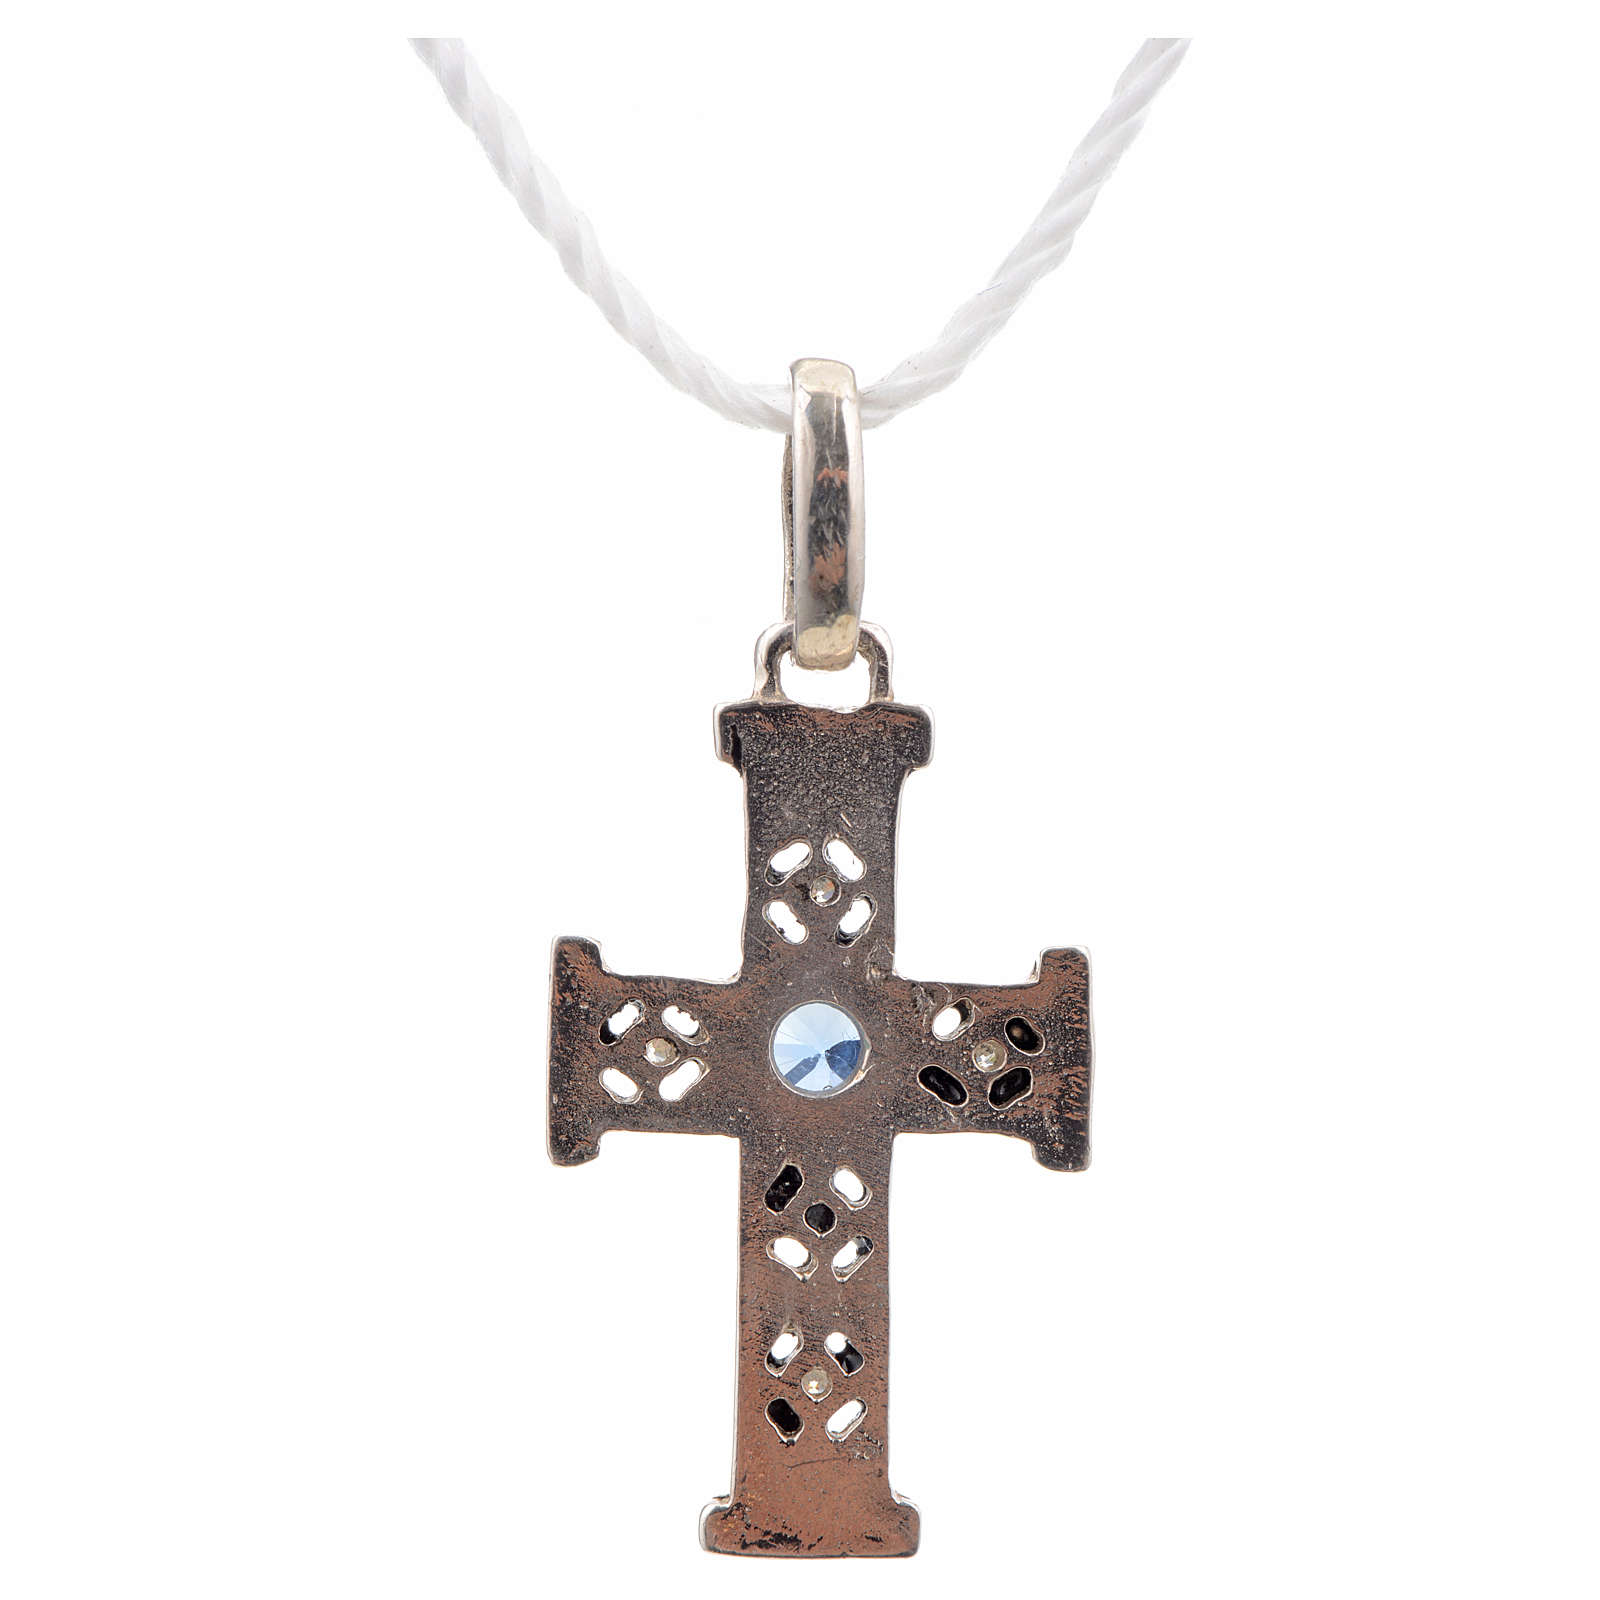 Pendant Romanesque cross, sterling silver, stone, oxidised finis 4